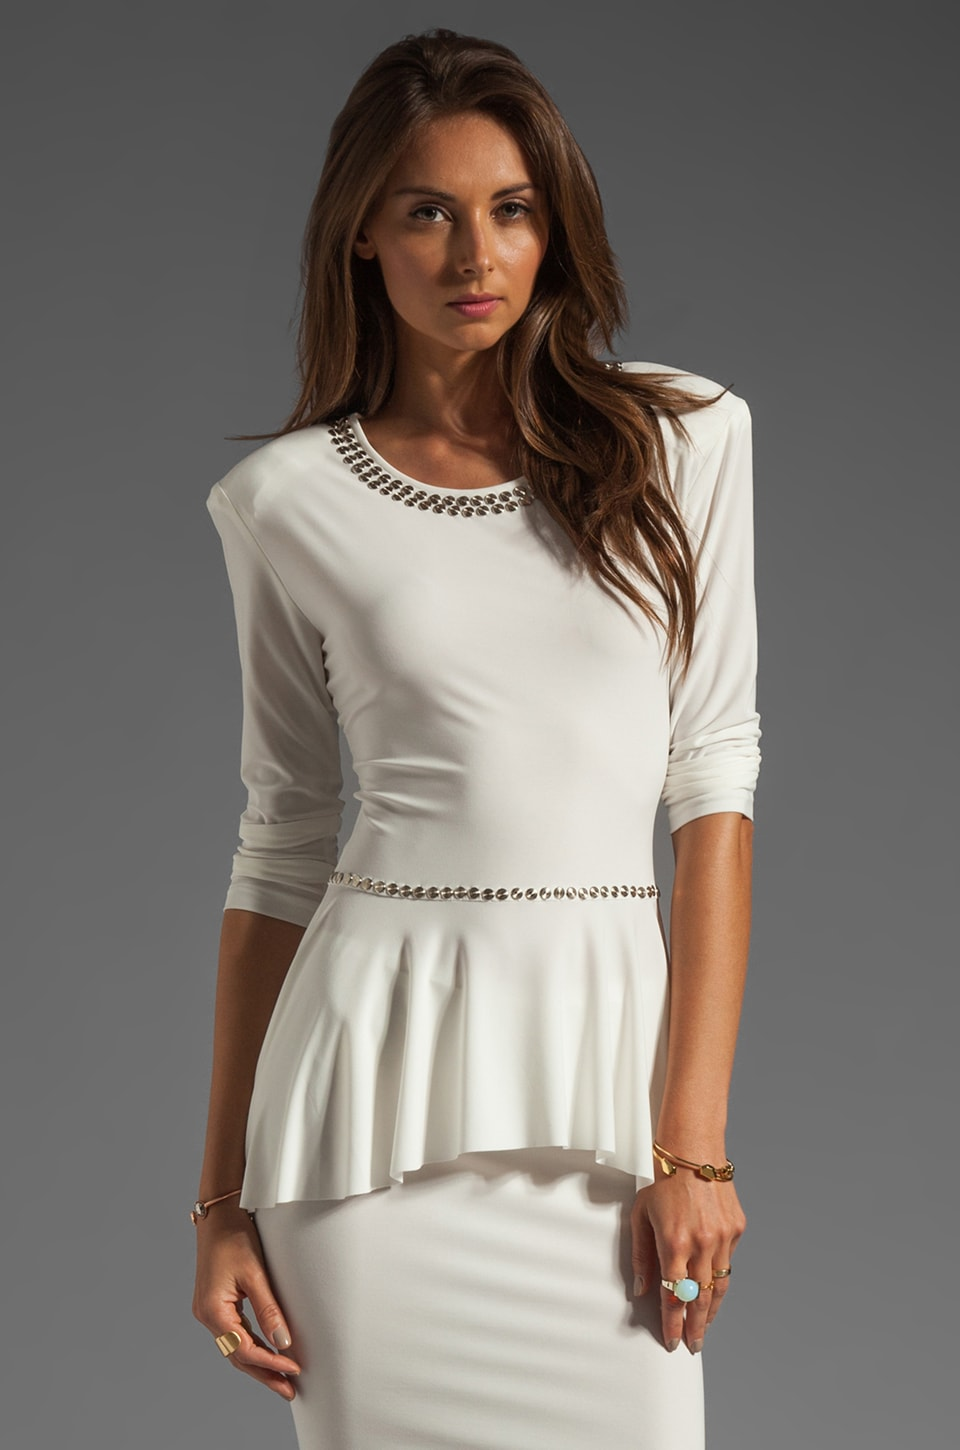 Norma Kamali Modern Vintage Jersey 3/4 Sleeve Peplum Top in White with Silver Studs